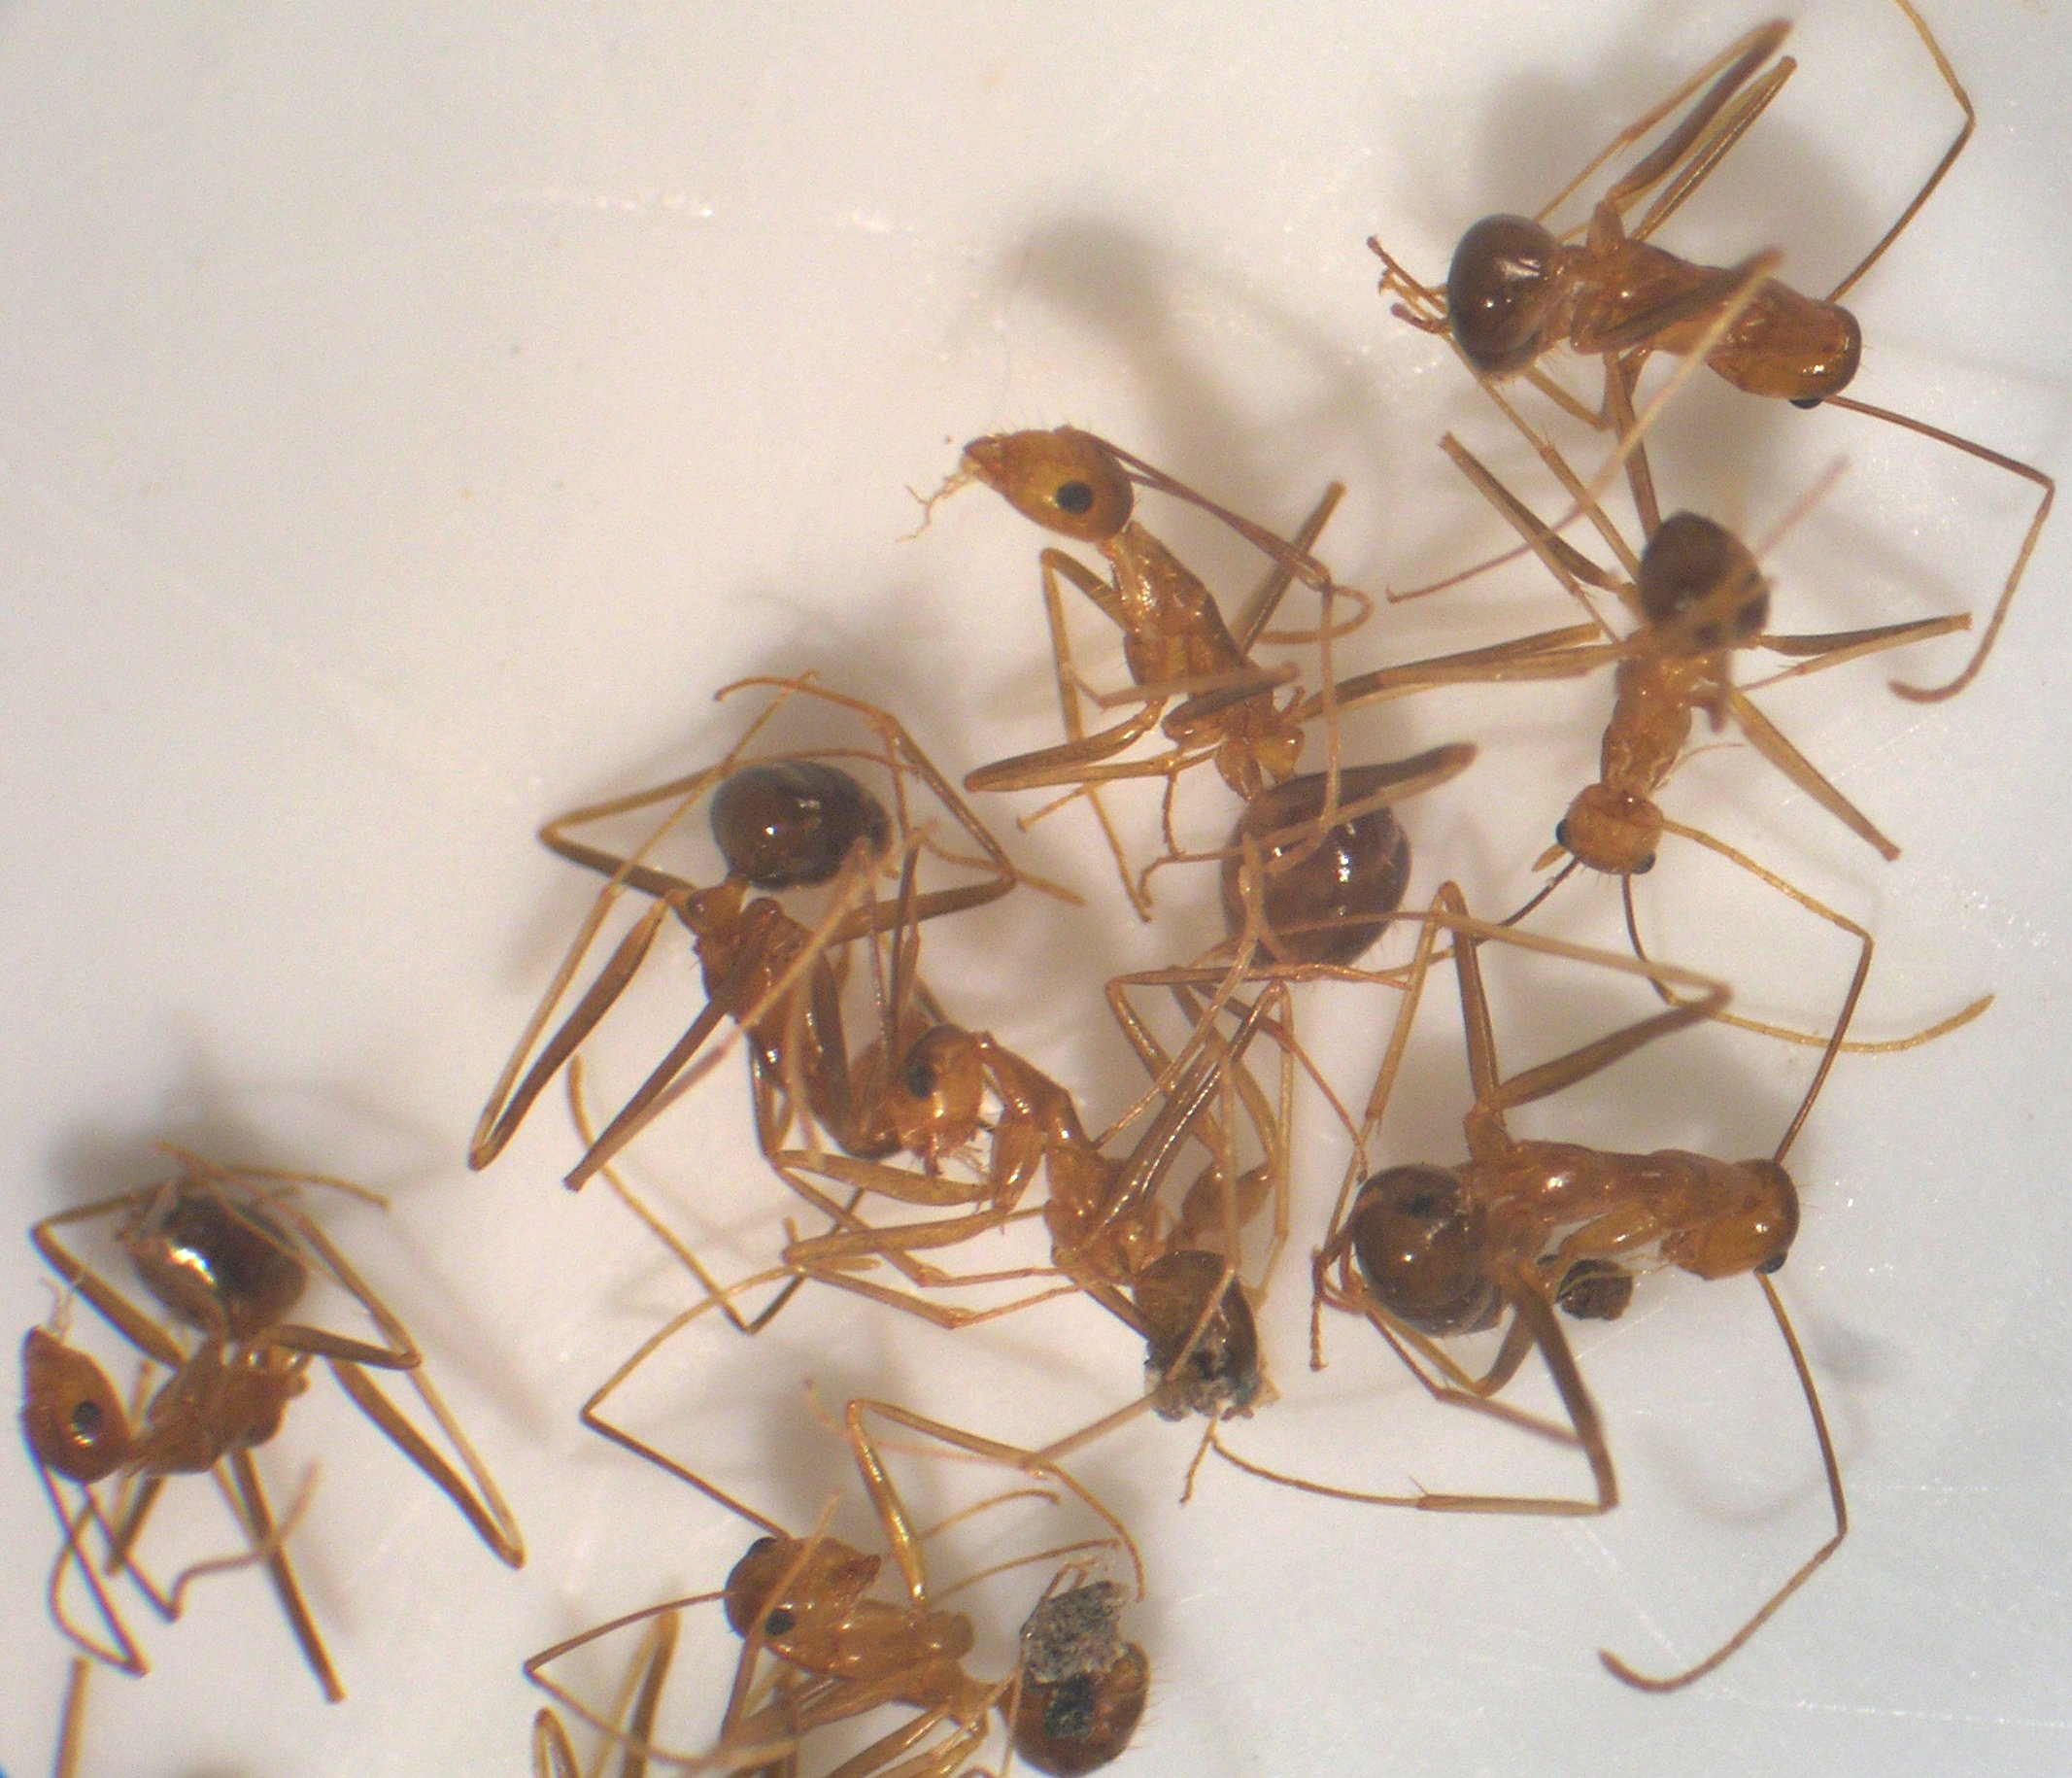 Yellow crazy ant - Wikipedia